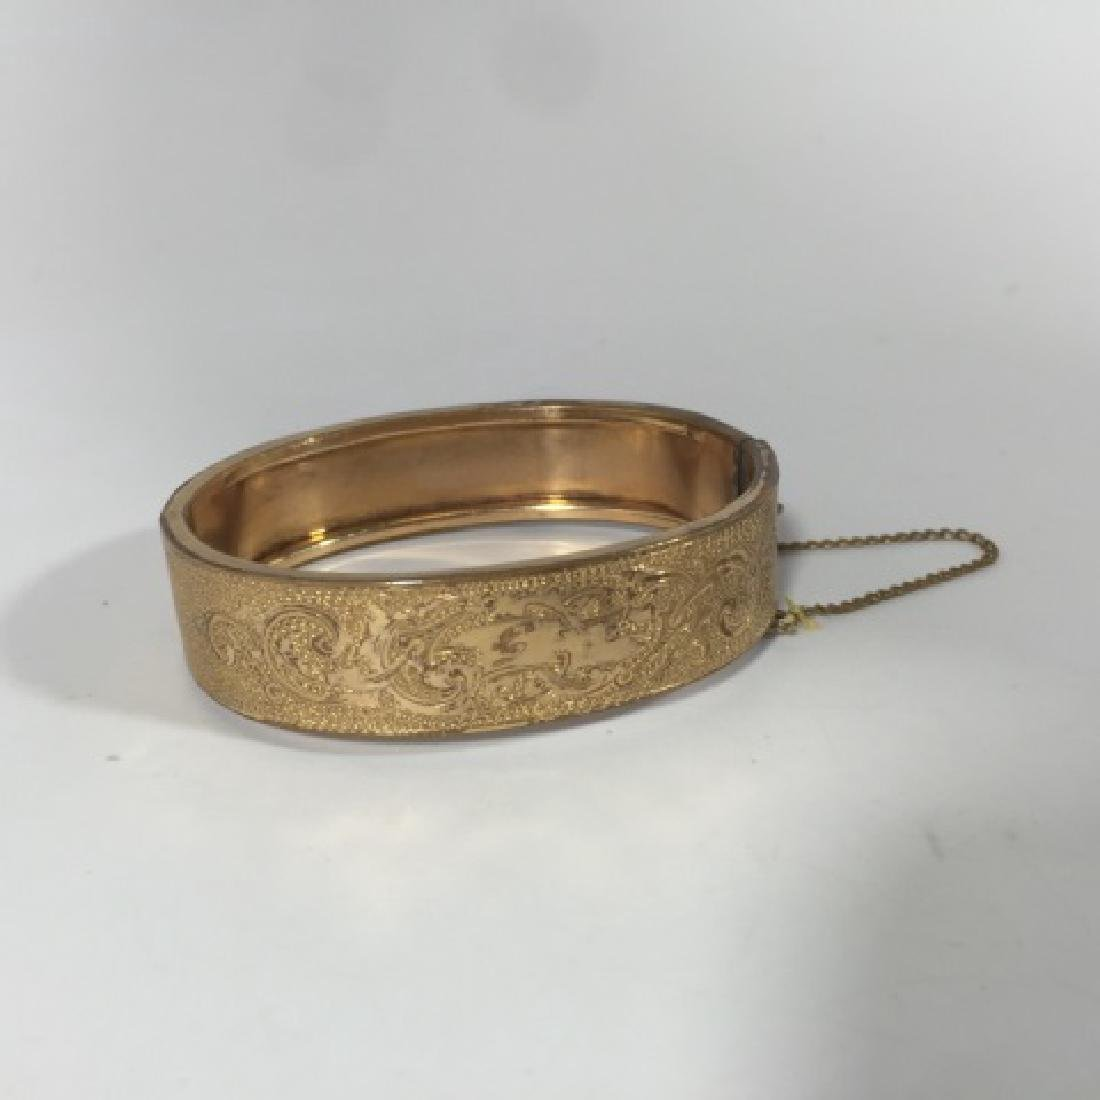 Antique 19th C Victorian Gold Plated Bracelet - 3